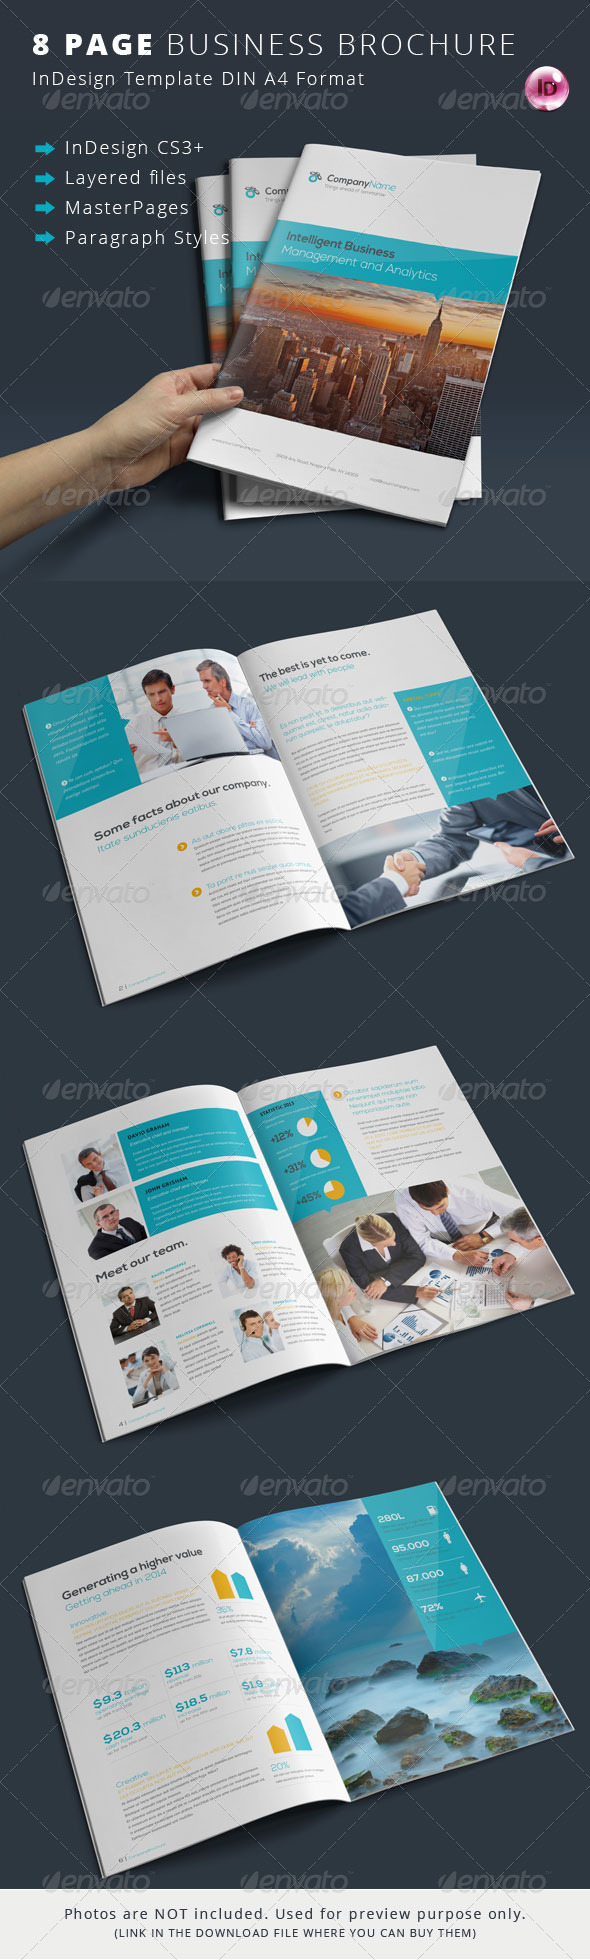 GraphicRiver 8 Page Corporate Brochure 7311050